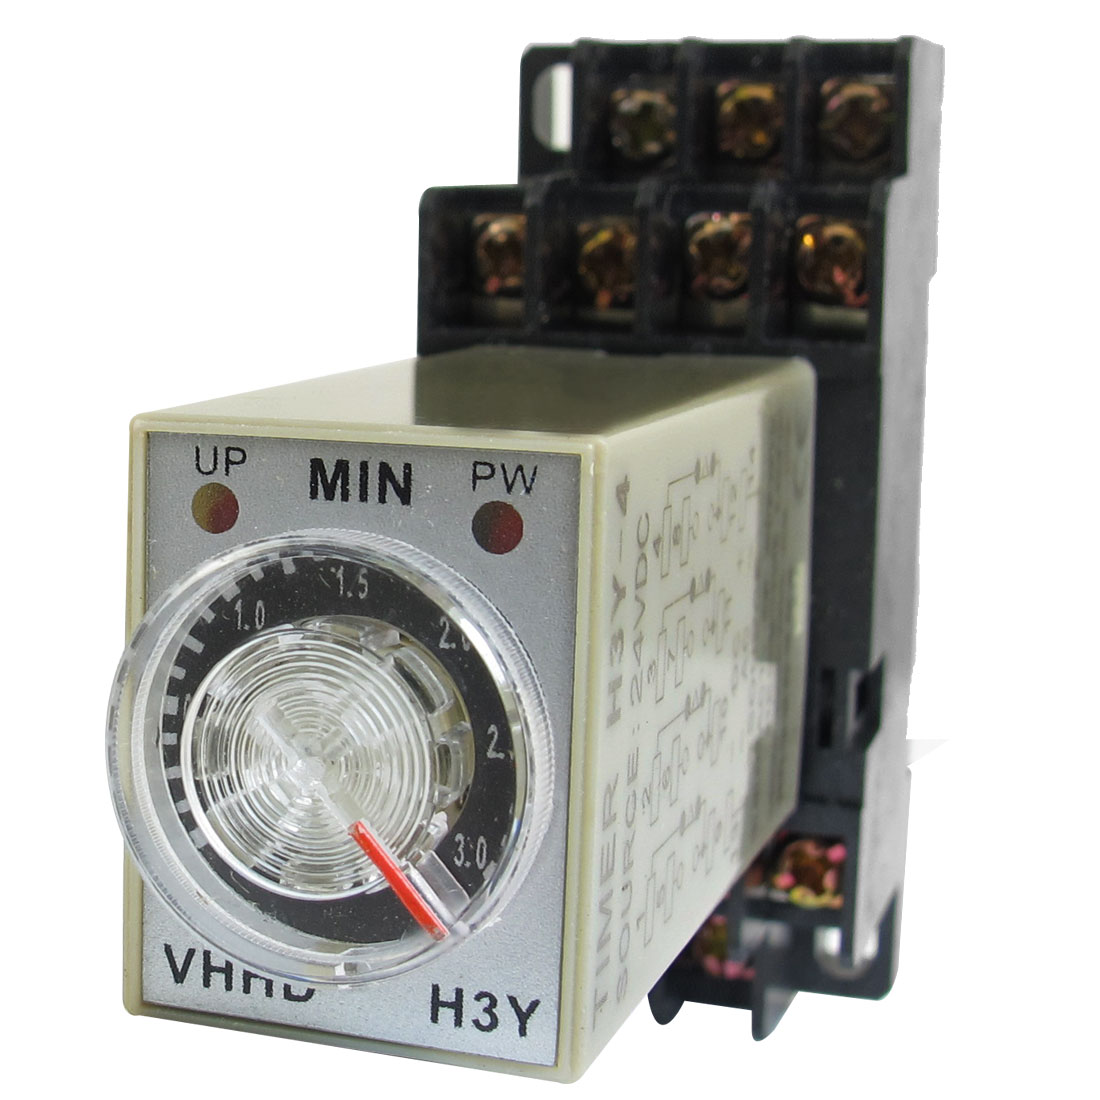 H3Y-4 LED Indicator Power Timing Relay 4PDT 14 Pin 3 Min 24V DC w Base